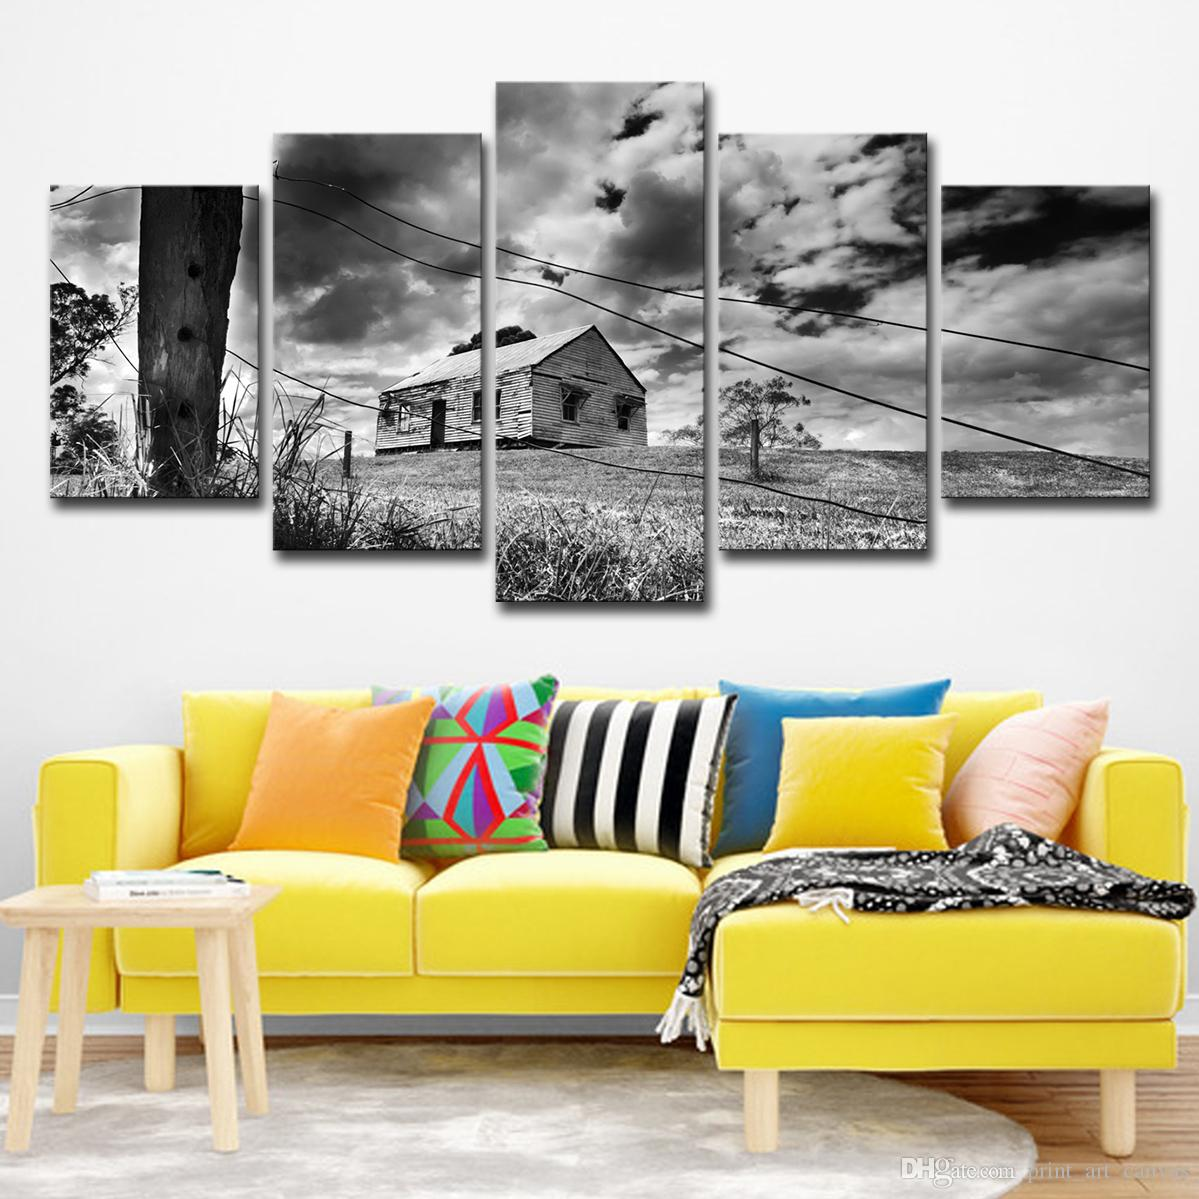 h and m home decor.htm 2020 home decor hd prints canvas wall art pictures haunted  prints canvas wall art pictures haunted